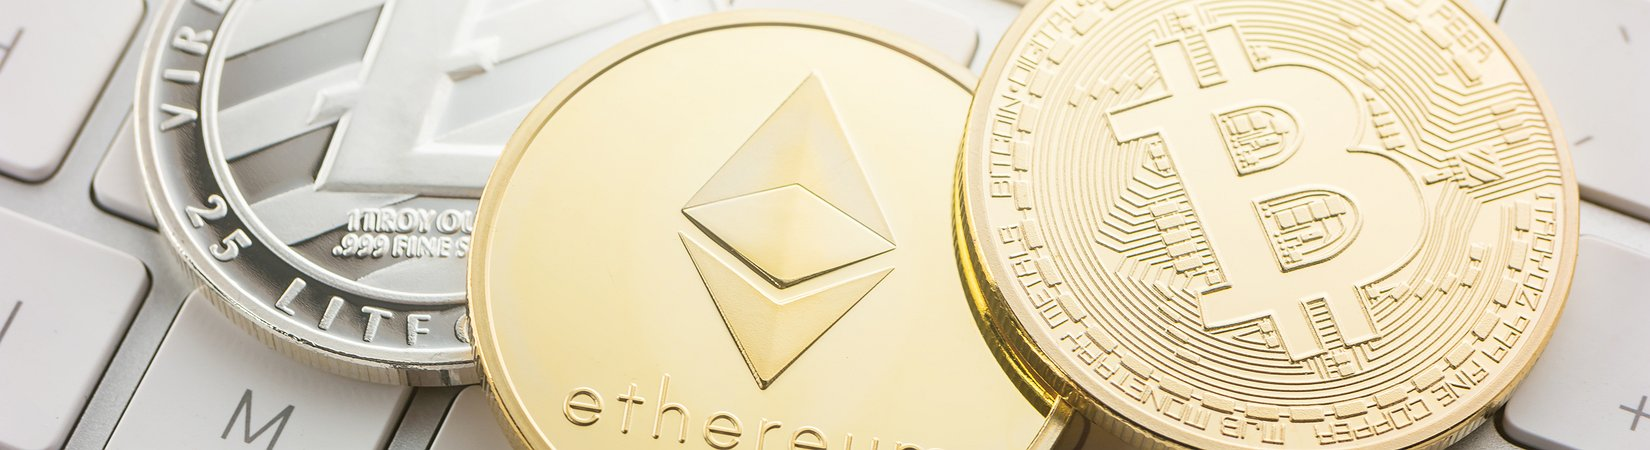 Best Cryptocurrency Exchanges of the Year